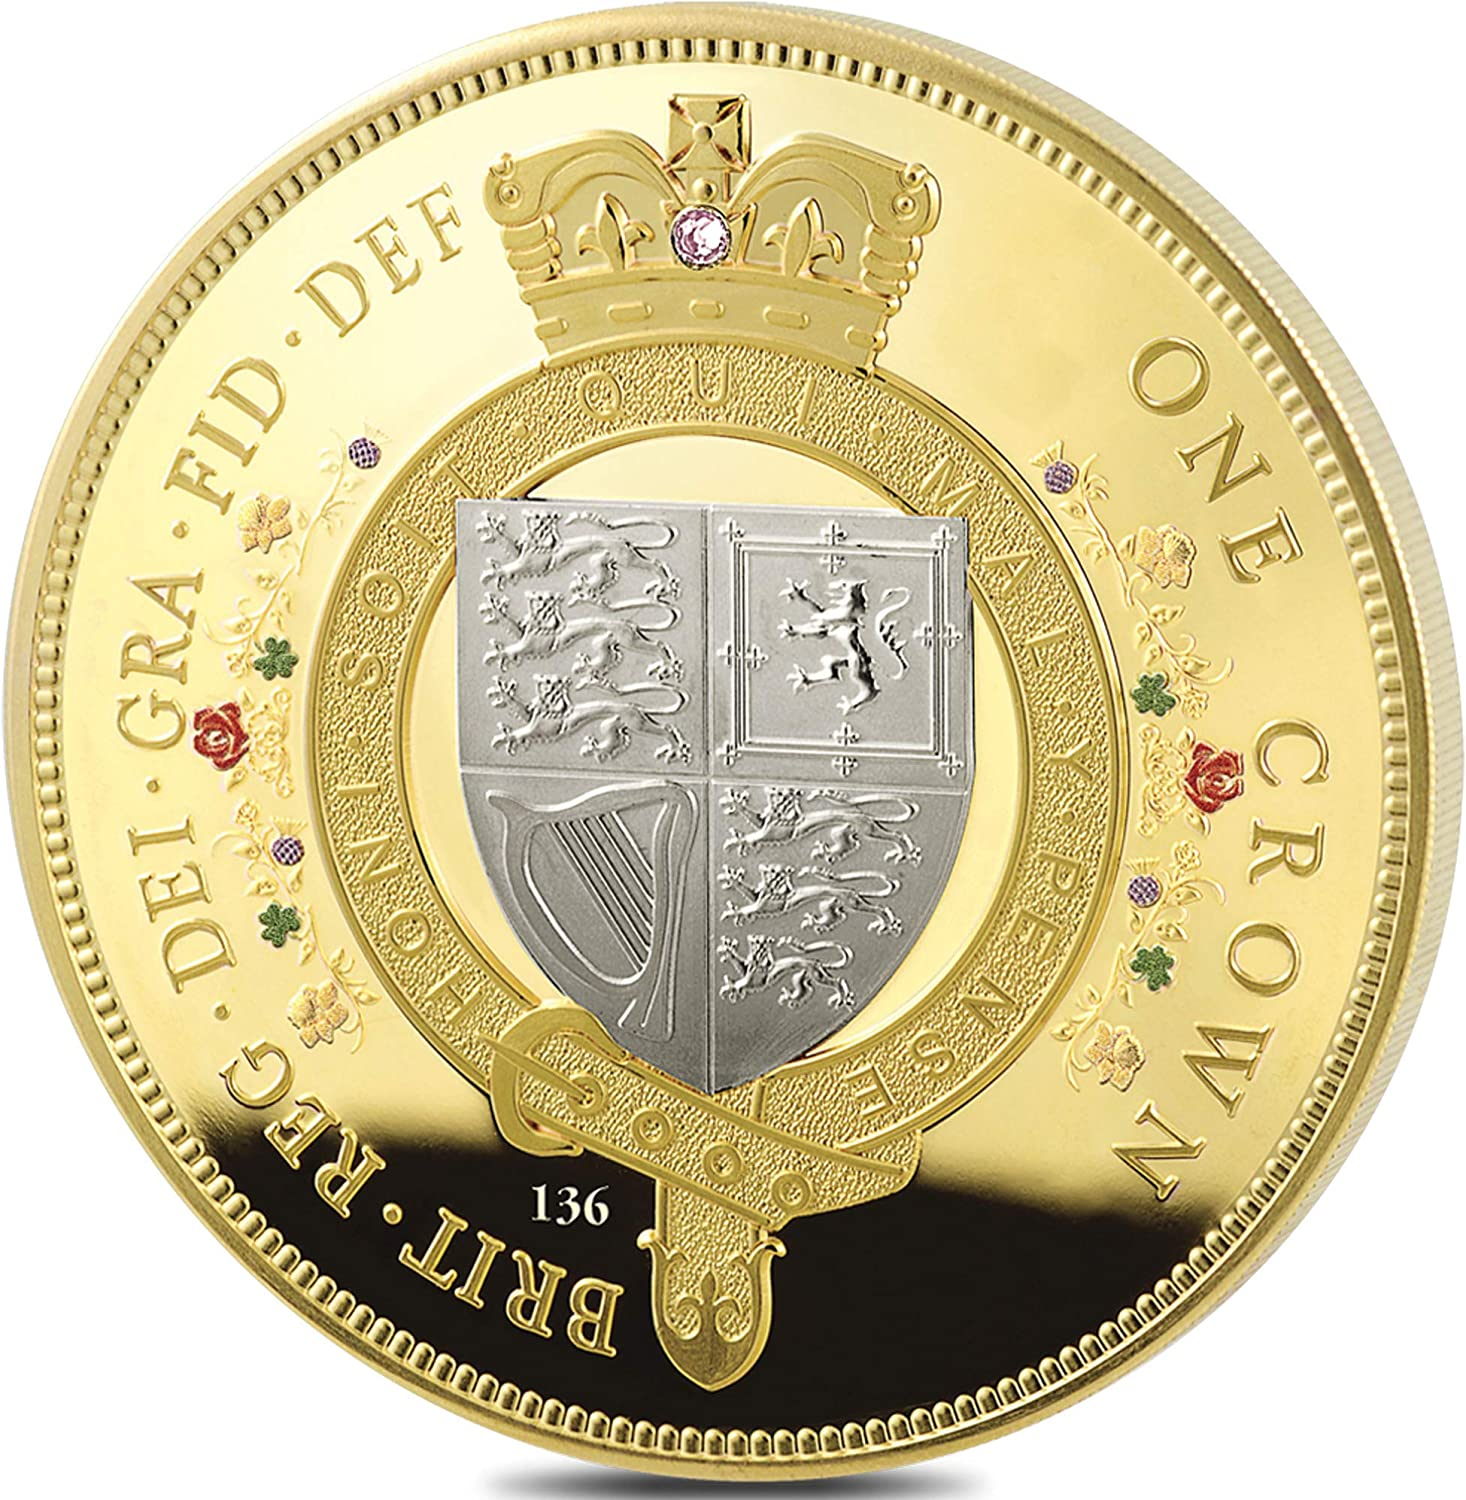 The Year She Became Longest-Reigning Monarch Individually Numbered Minted On The Queen/'s Birthday In 2015 The Bradford Exchange The Longest Reigning Monarch Golden Crown Coin